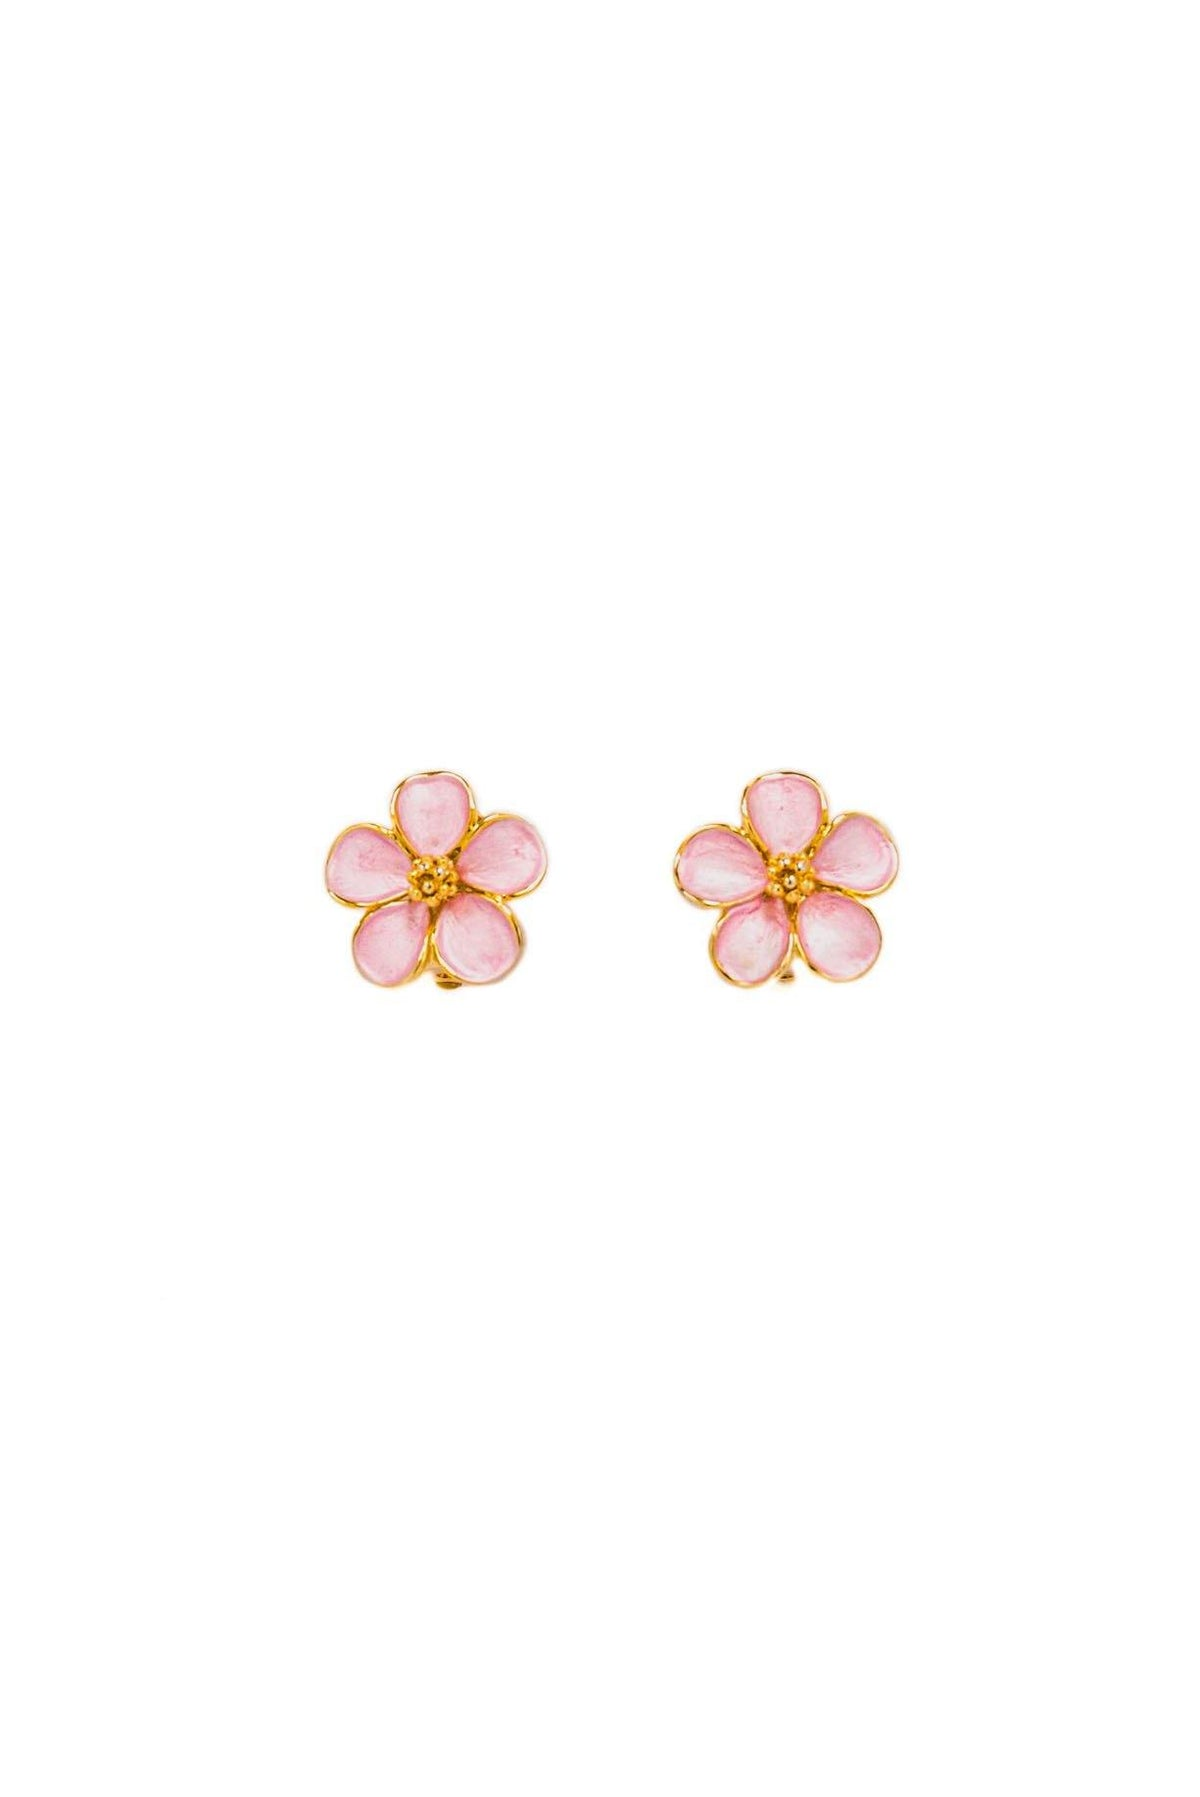 Vintage Dainty Pink Cherry Blossom Clip-on Earrings